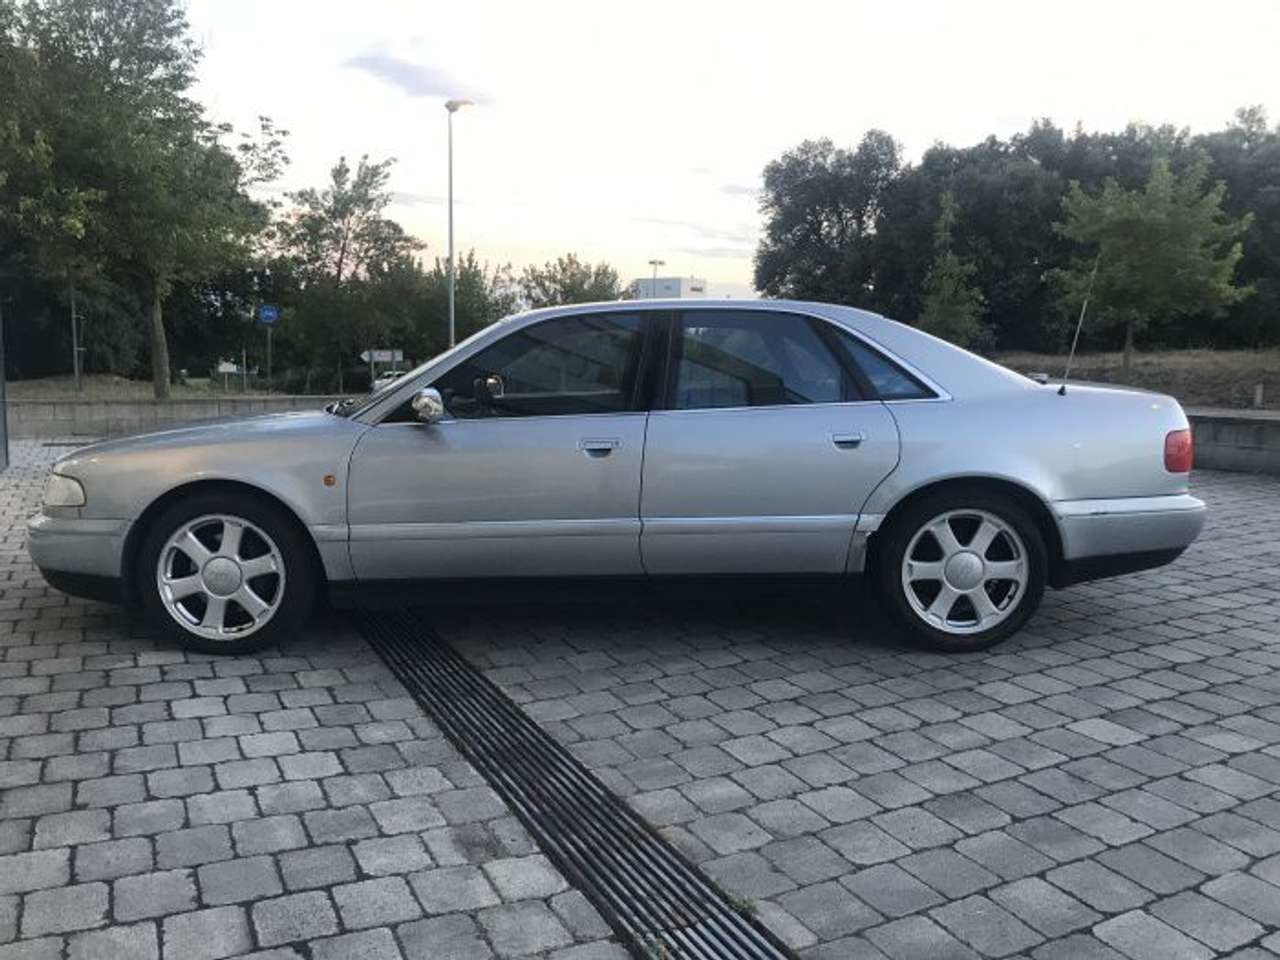 1998 Audi S8 Quattro 6 speed 4.2L-1 owner-superb LHD For Sale (picture 1 of 6)